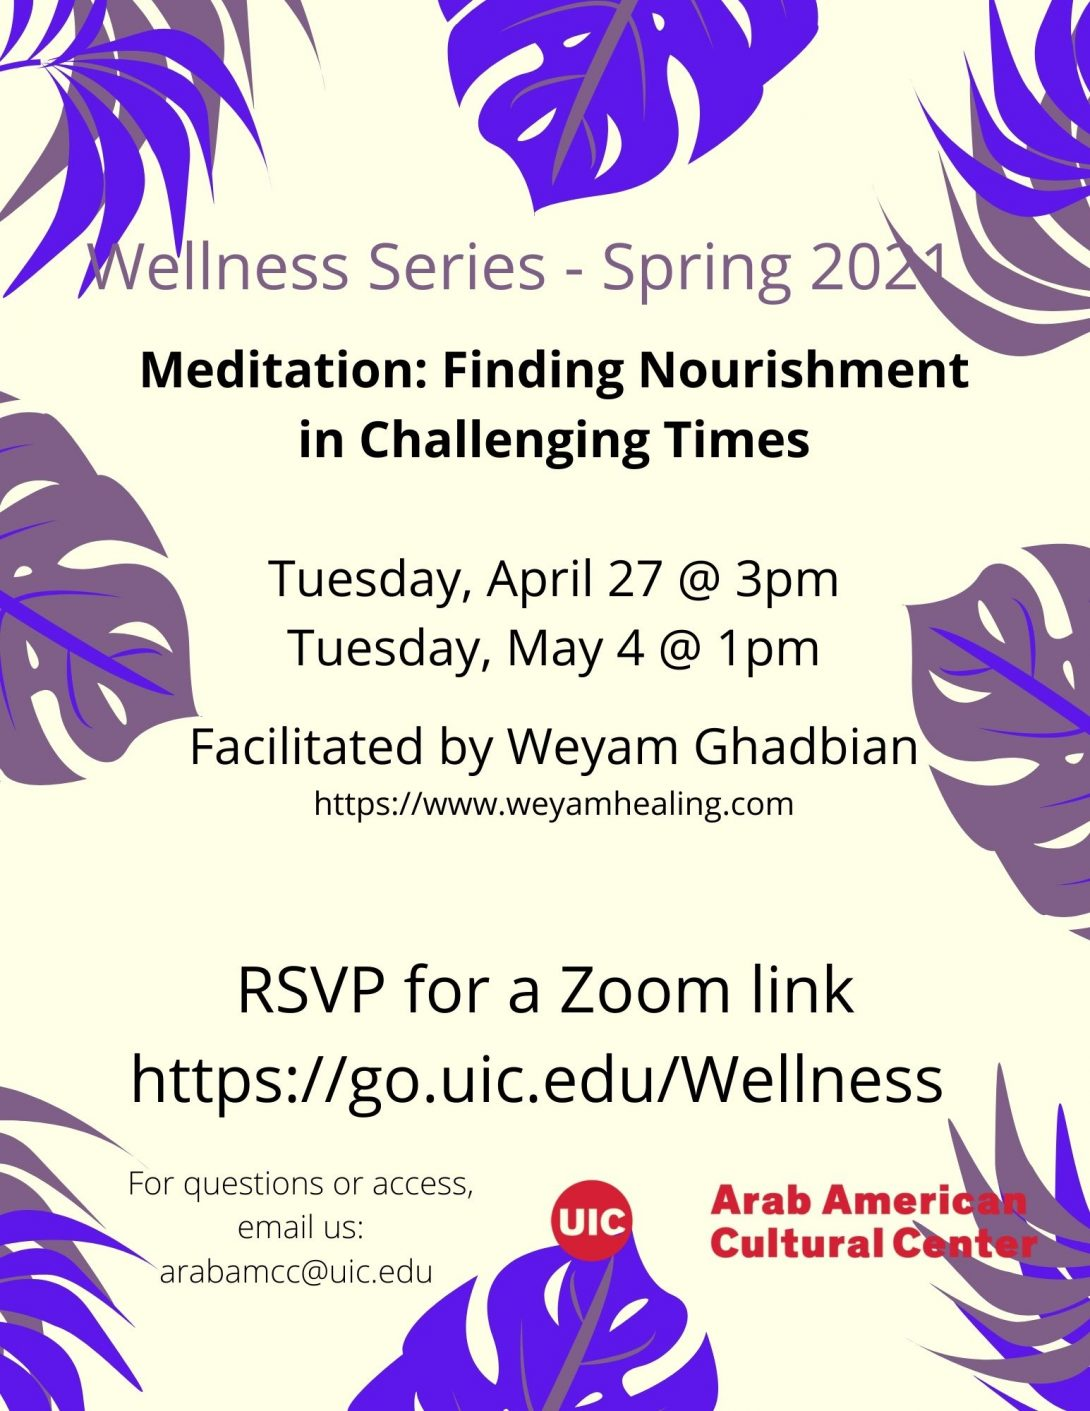 Lavendar and purple tree leaves surround an off white flyer with information about the different events, the faciltiator, the link to RSVP and the logo of the center from top to bottom.